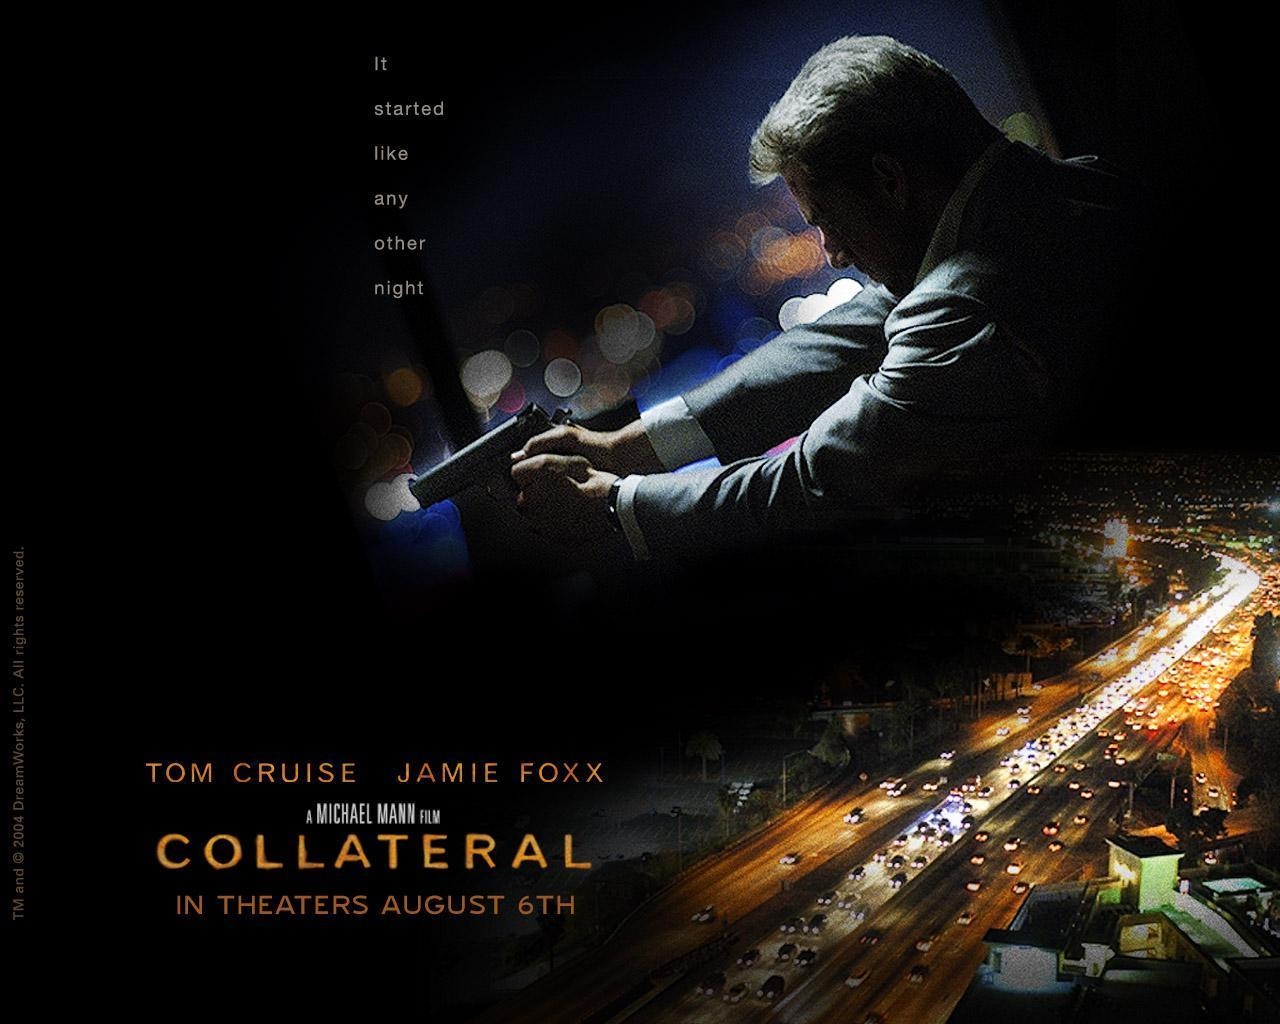 Image gallery for Collateral